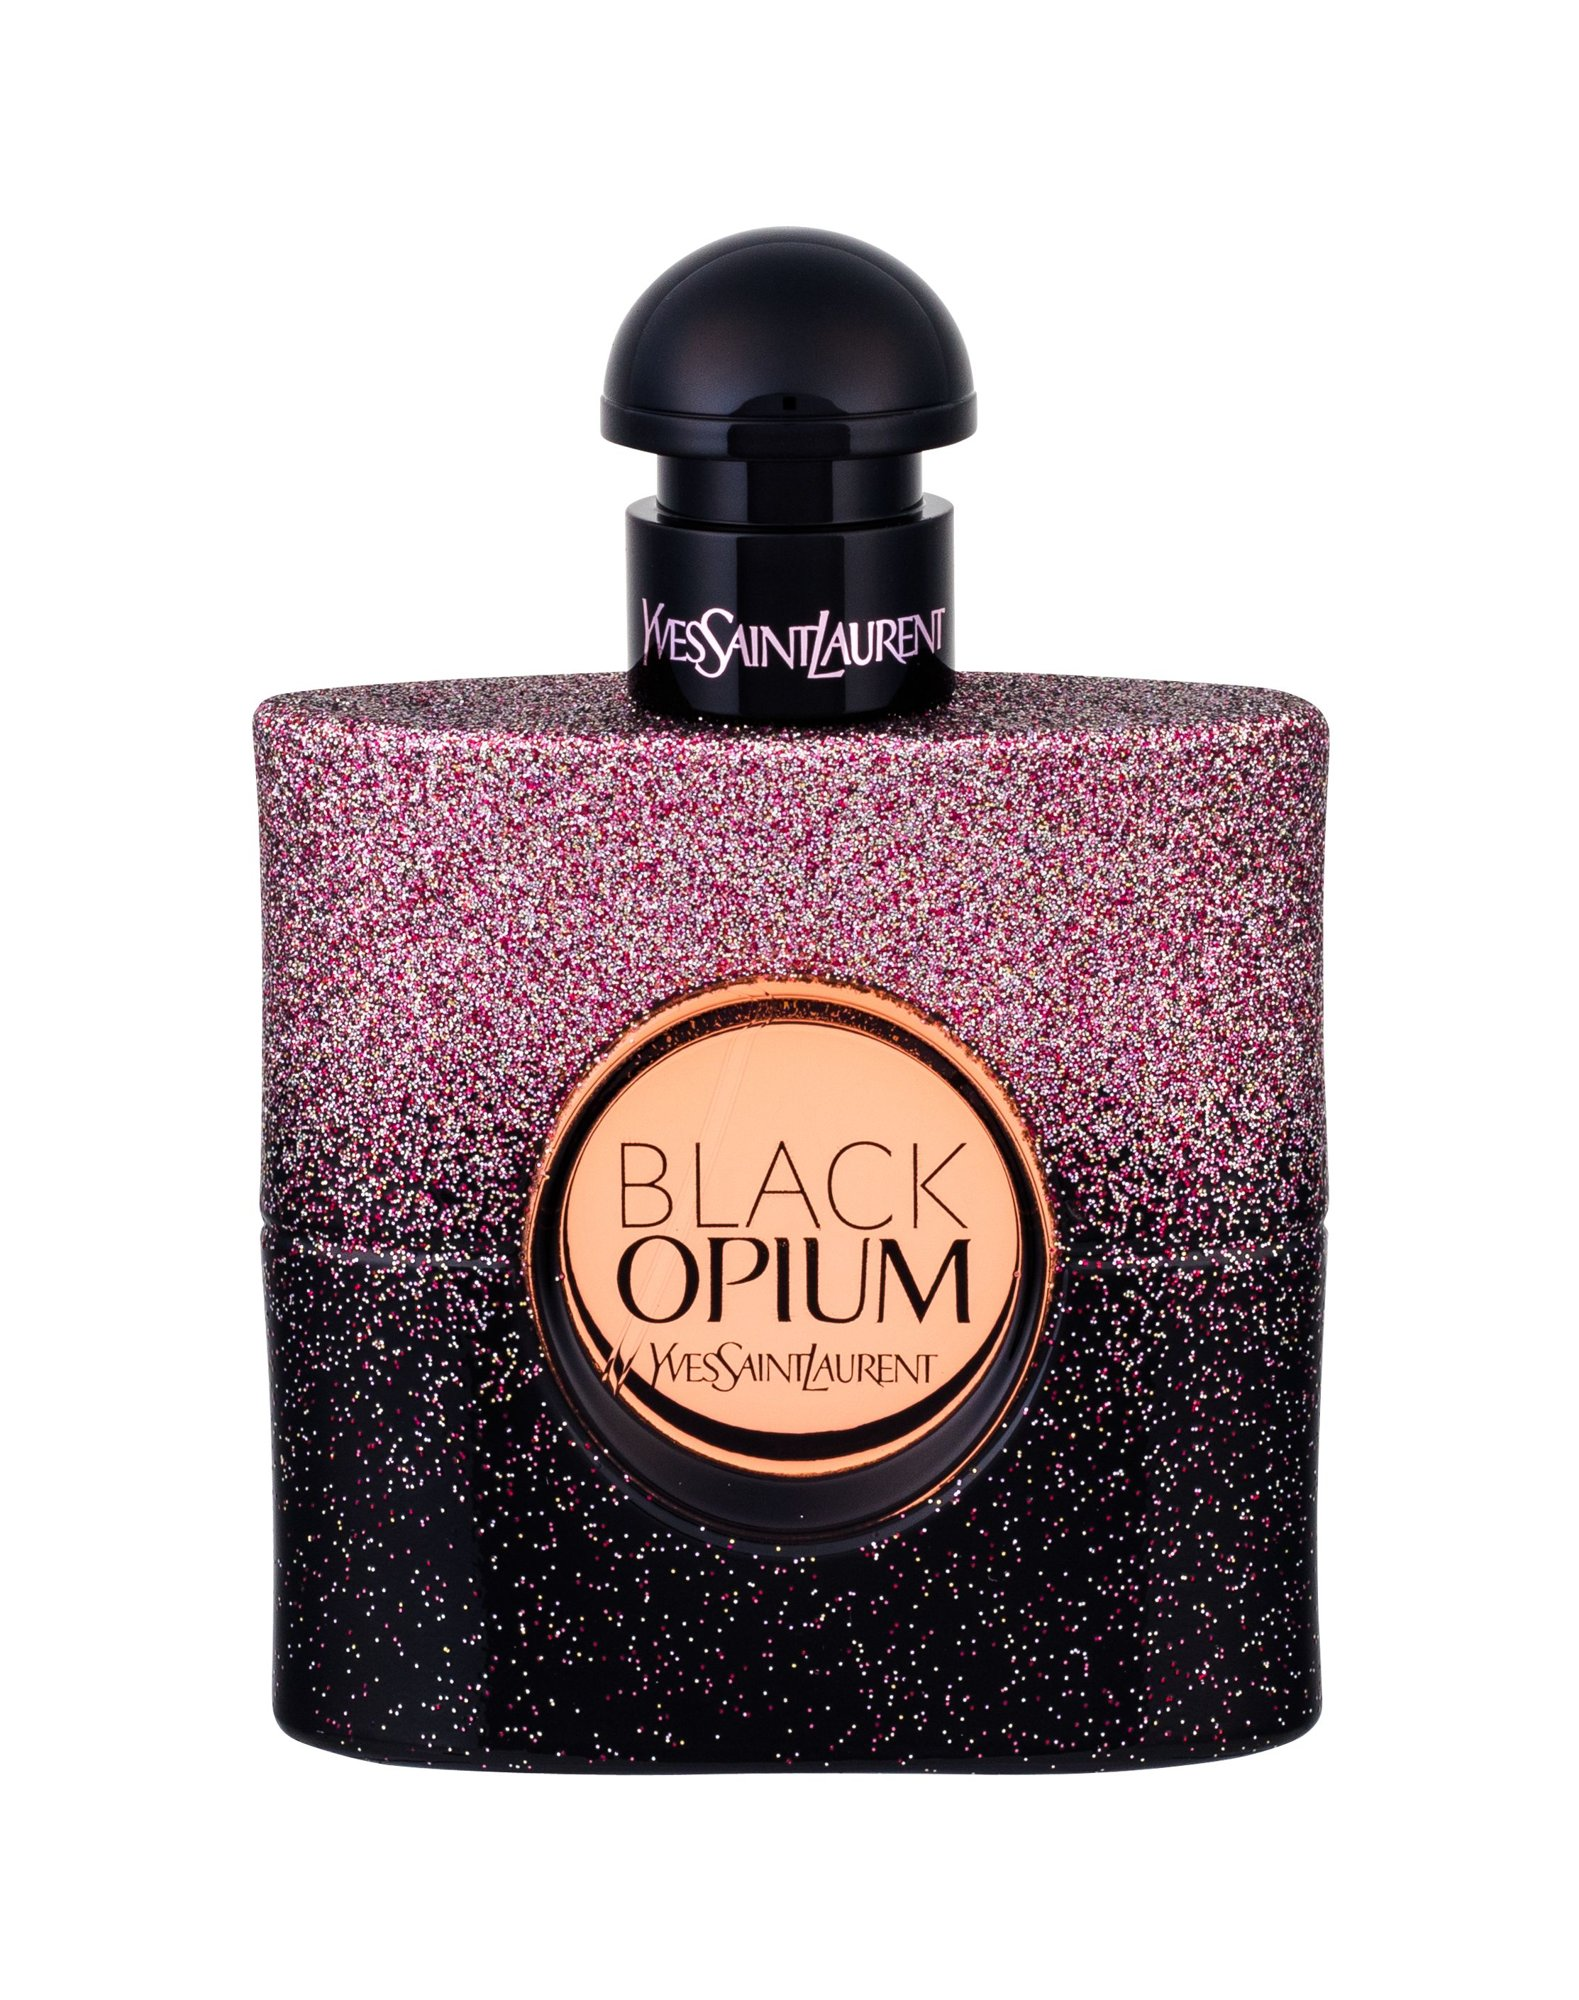 Yves Saint Laurent Black Opium Dazzling Lights Collector Edition EDP 50ml